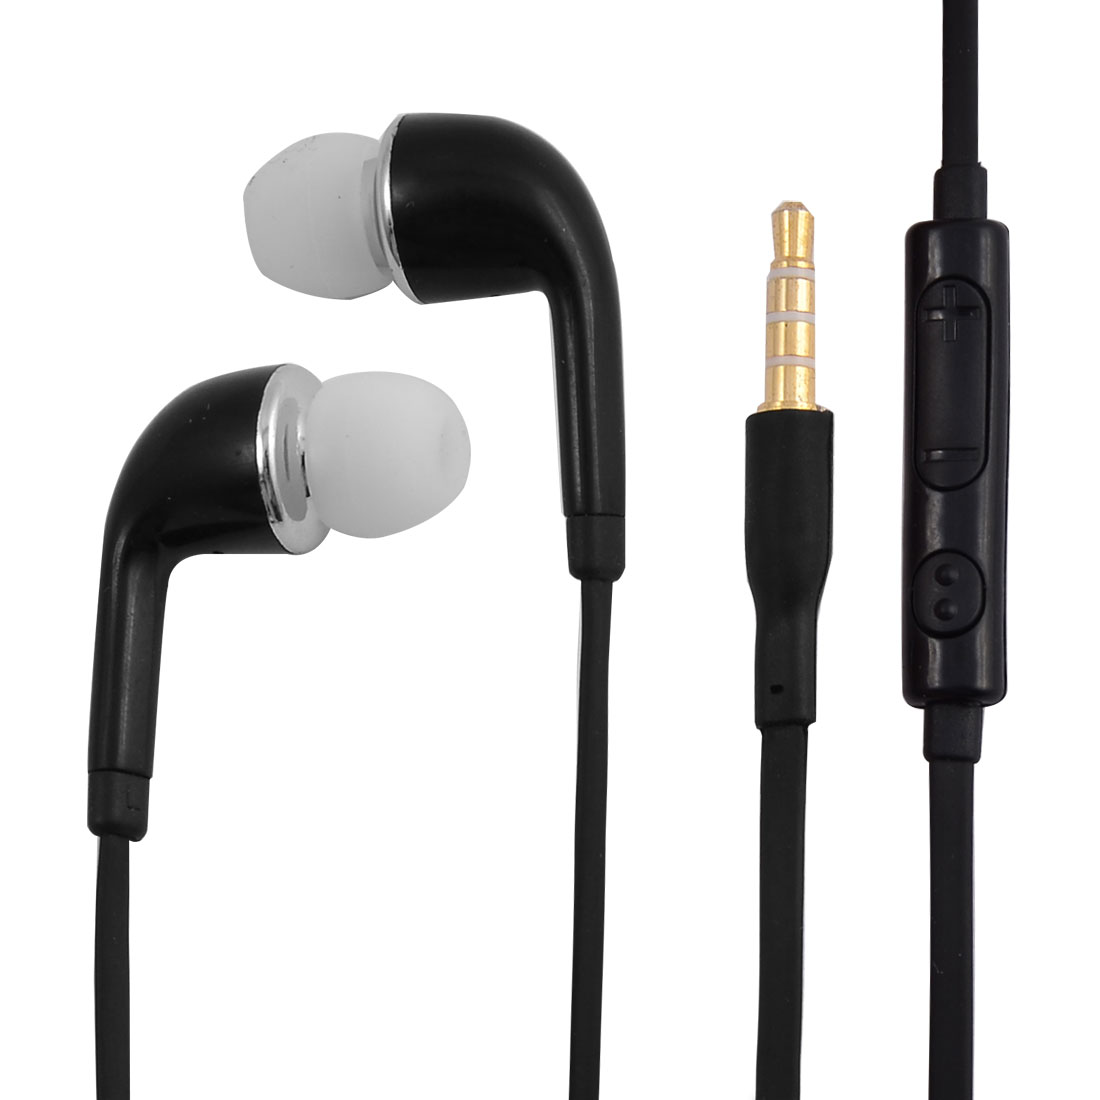 3.5mm Stereo In-Ear Earphones Headphones Headsets Black for Cellphone